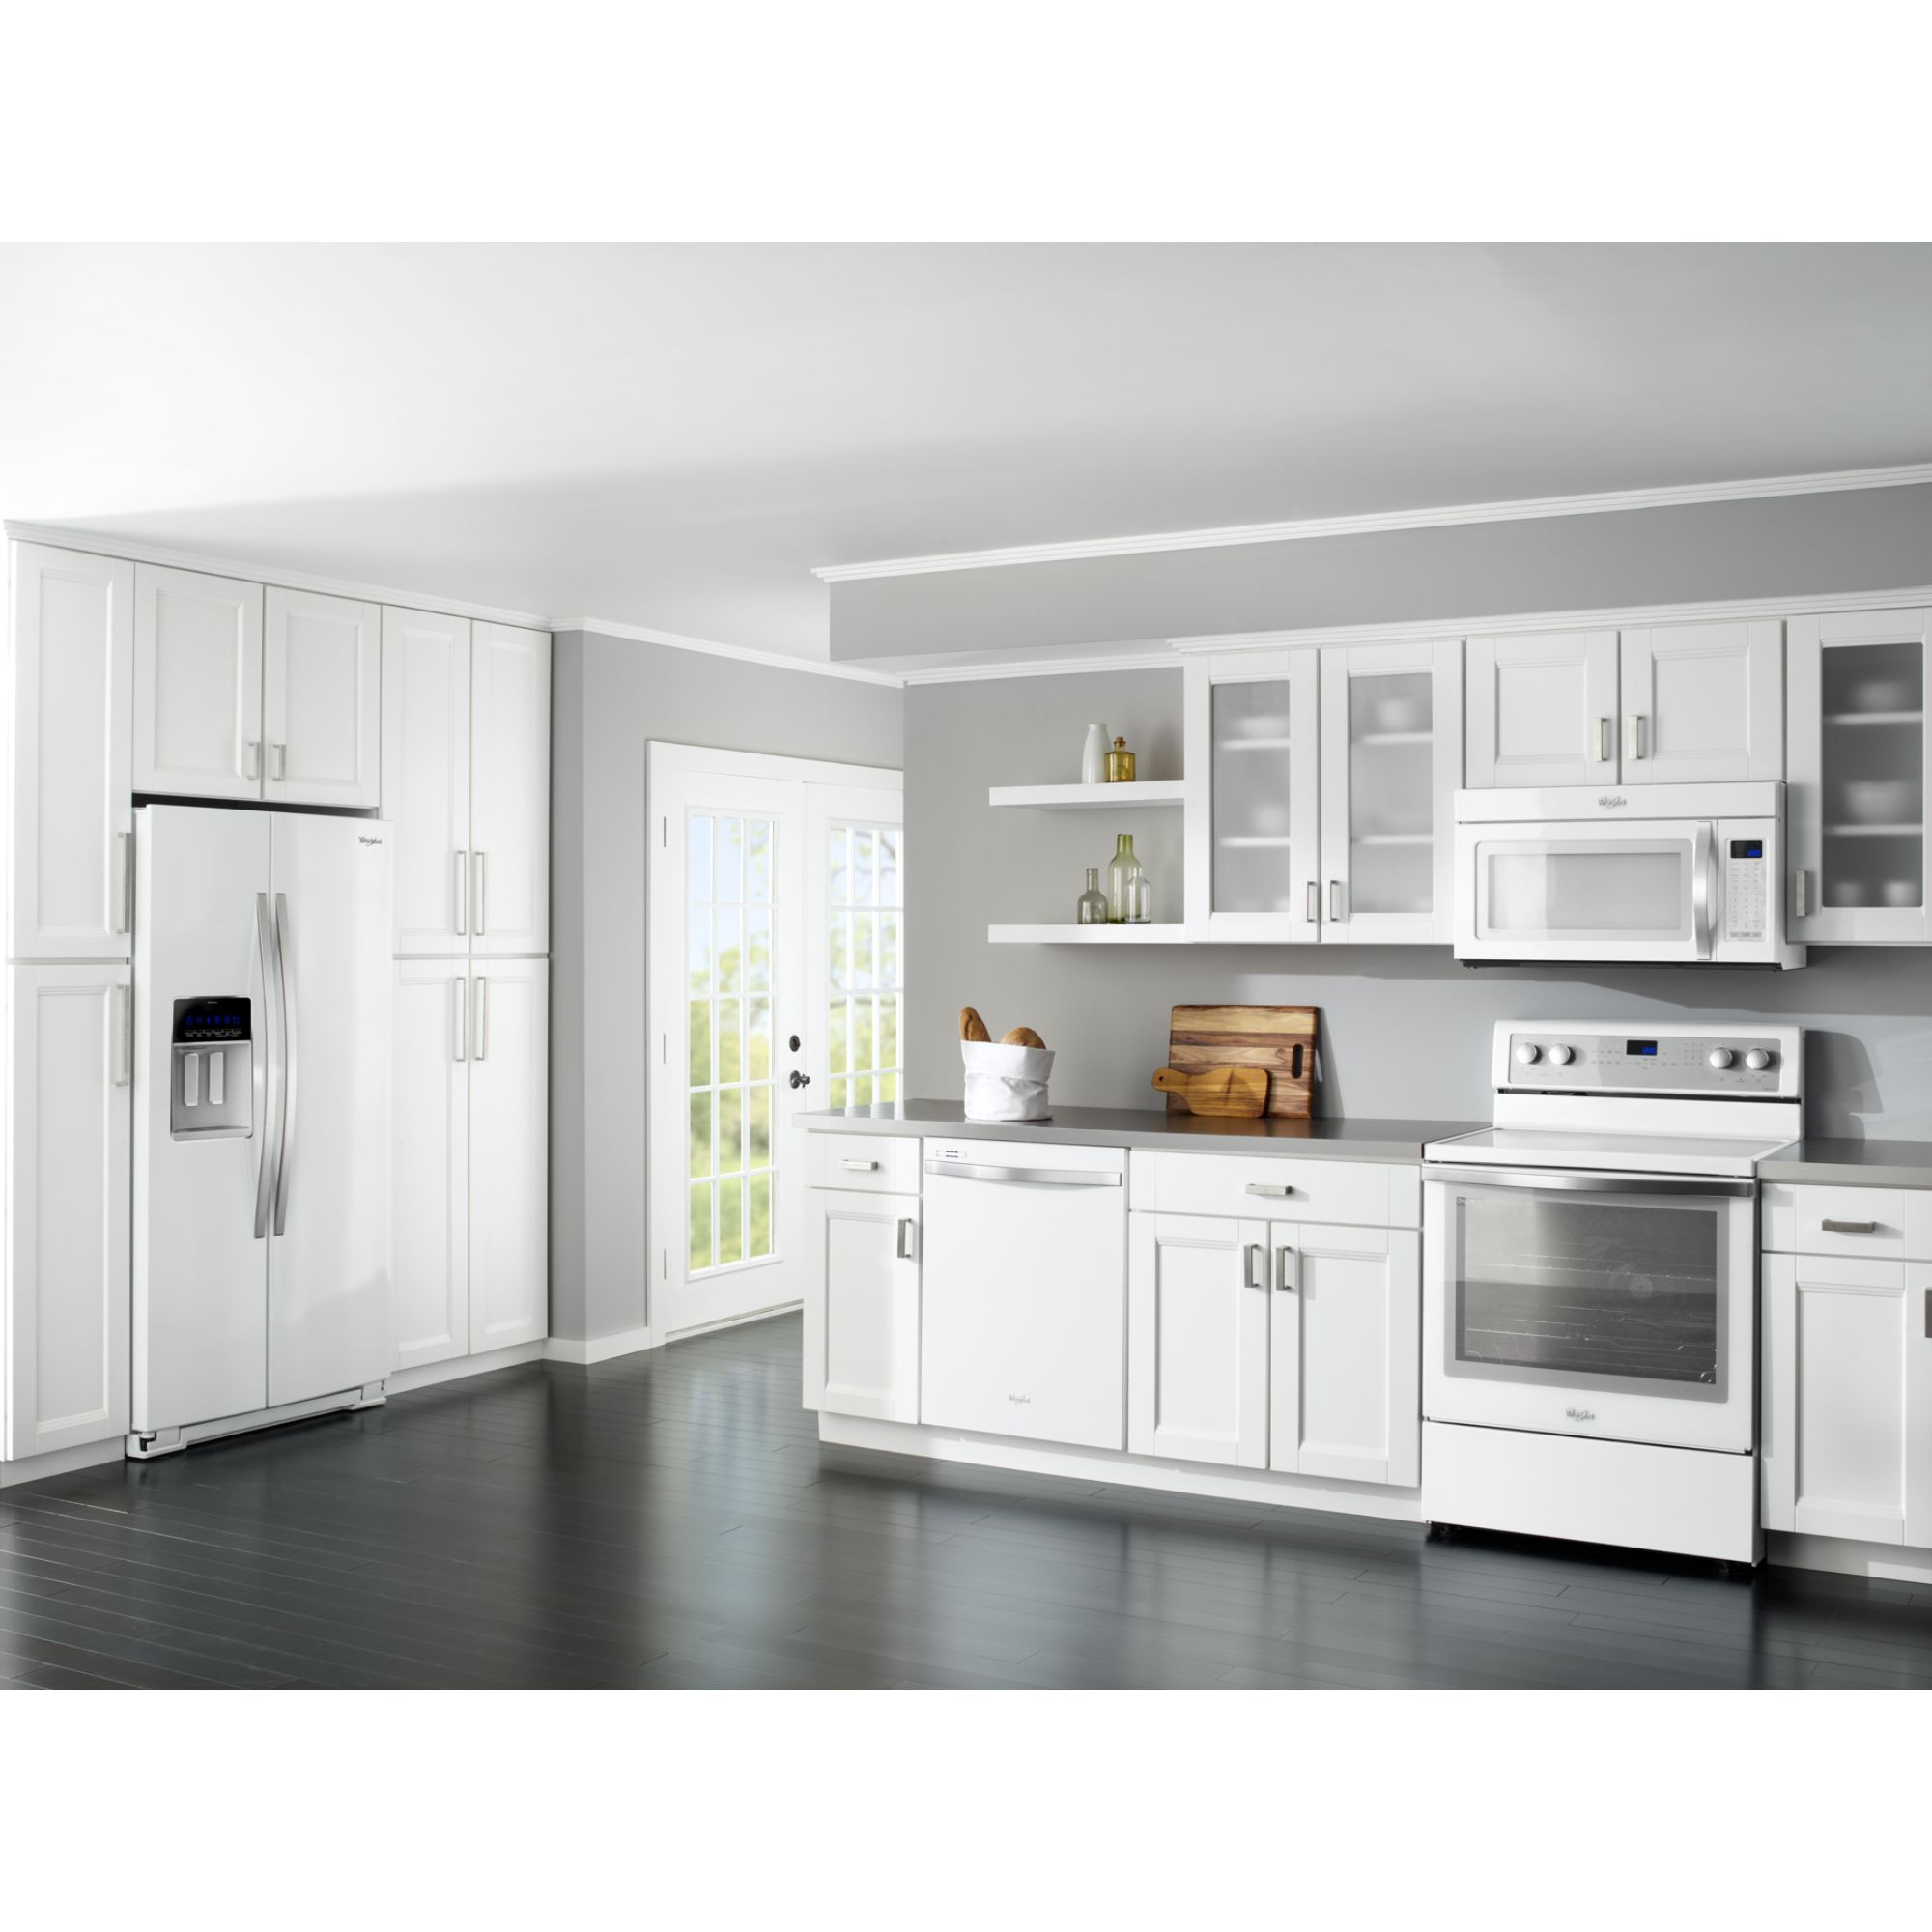 Whirlpool Gold 24.5 cu. ft. Counter-Depth Side-by-Side Refrigerator w/ MicroEdge™ Shelves - White Ice